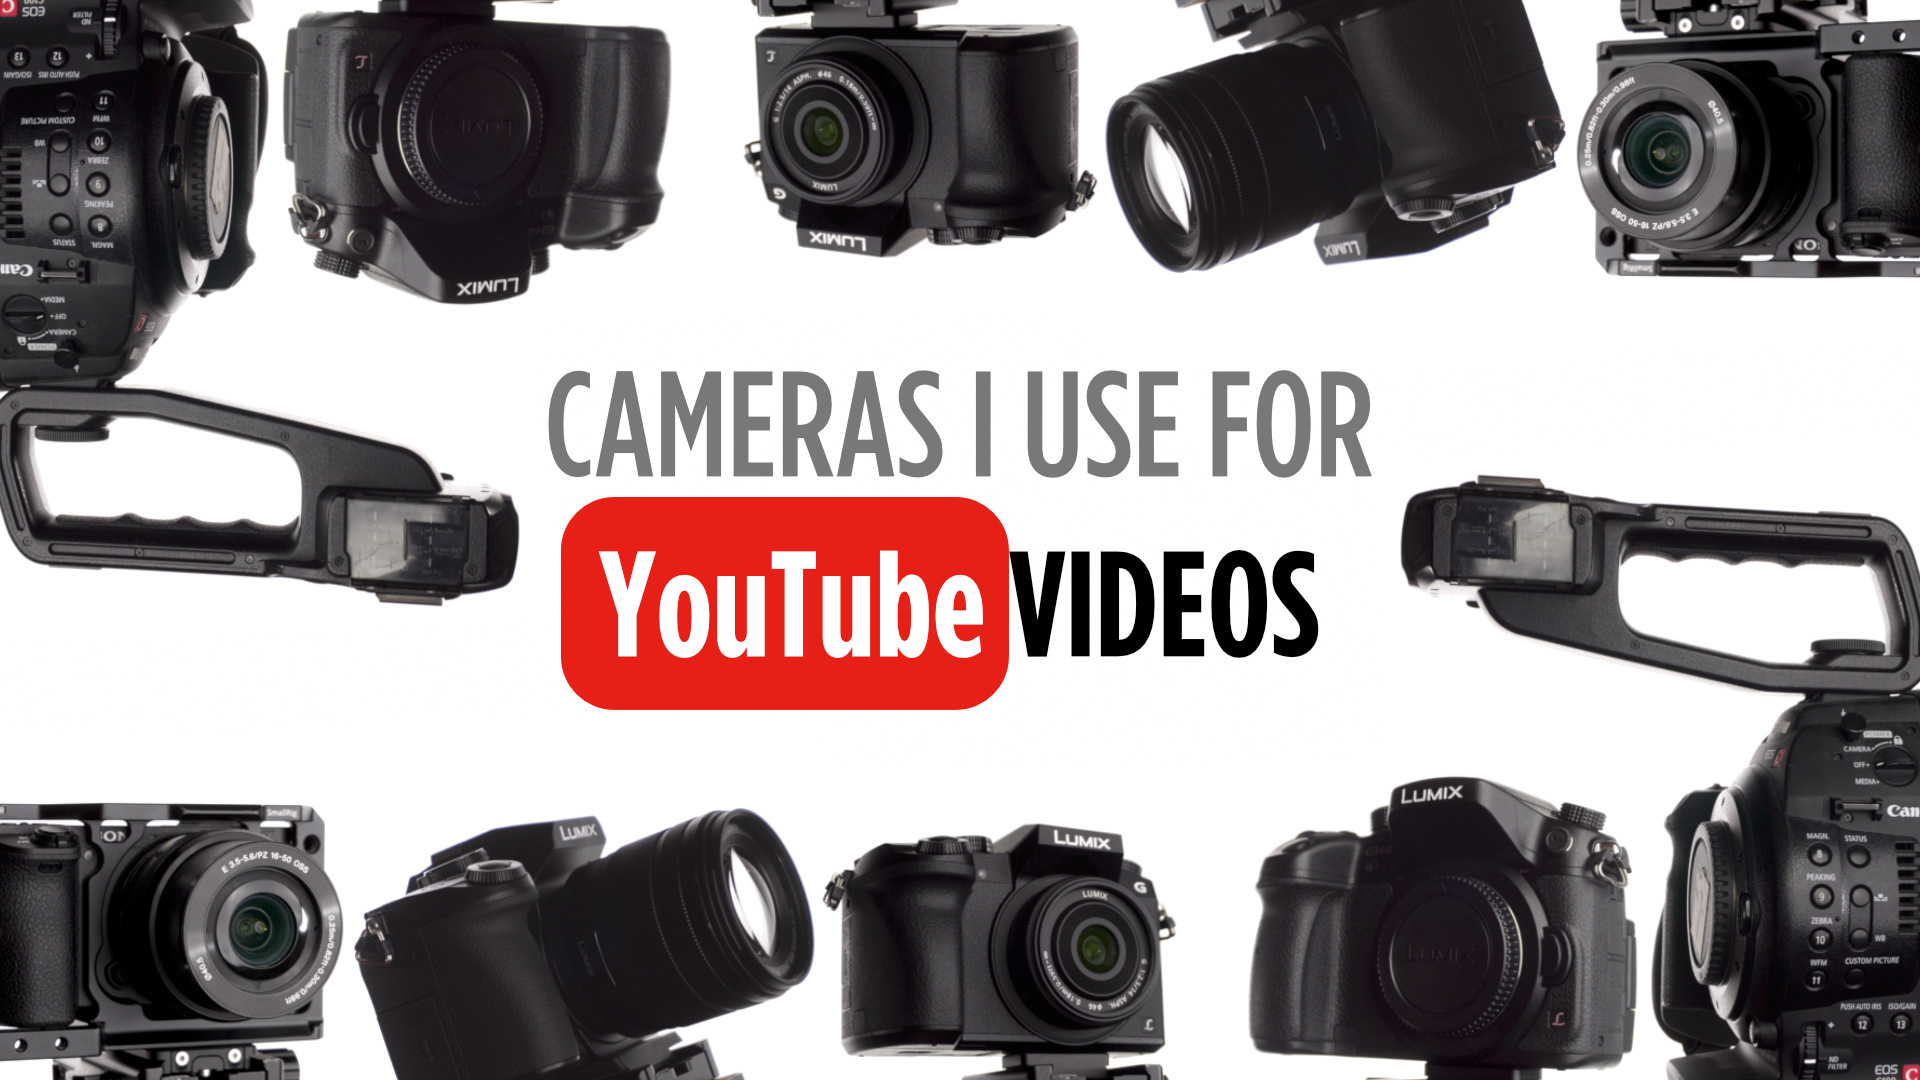 Cameras I Use for Making Youtube Videos